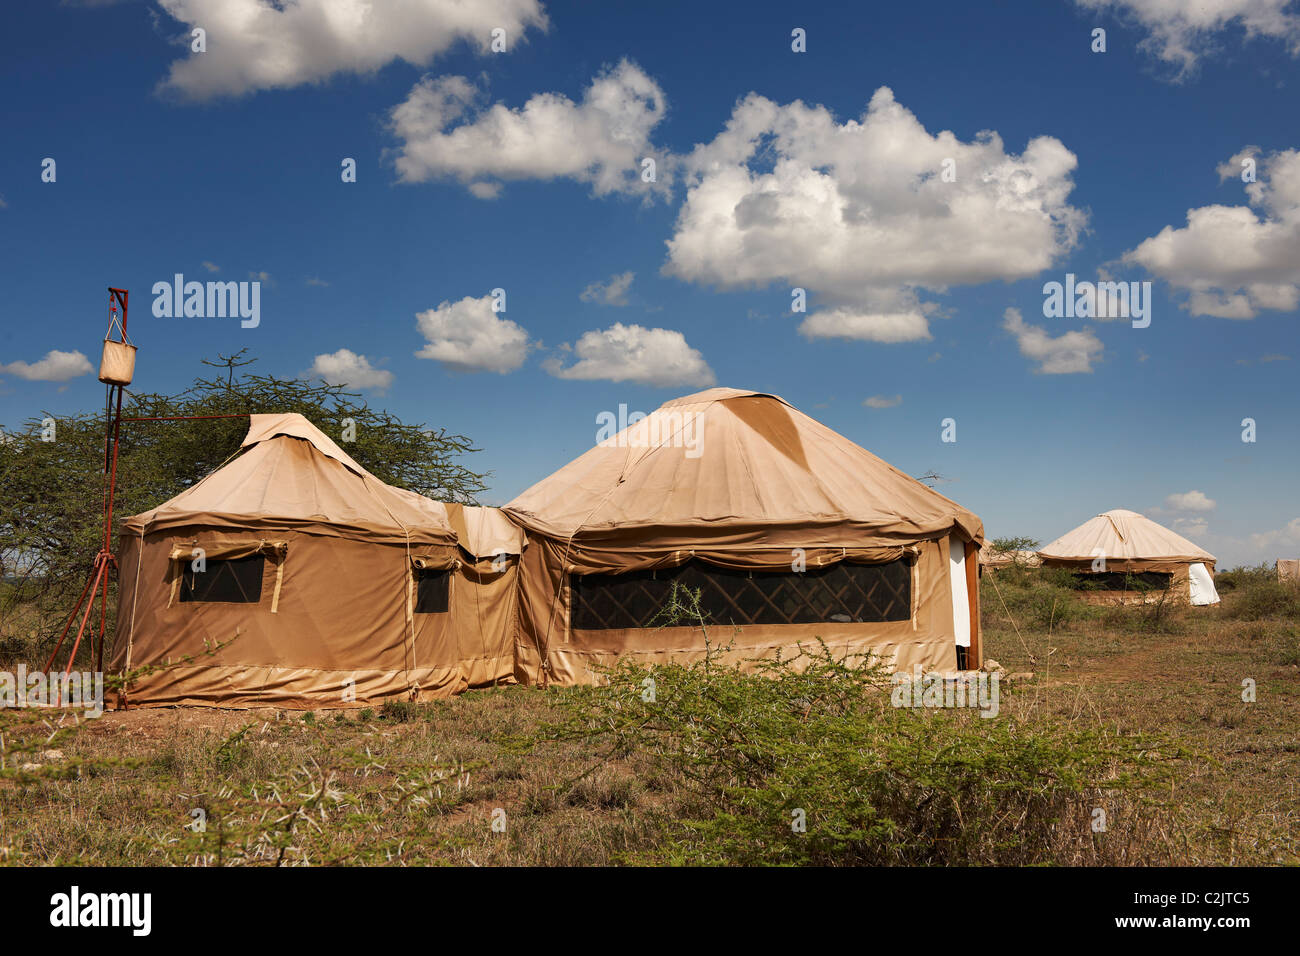 tents in style of yurt from Nduara Loliondo Tended Safari C& Serengeti Tanzania Africa & tents in style of yurt from Nduara Loliondo Tended Safari Camp ...